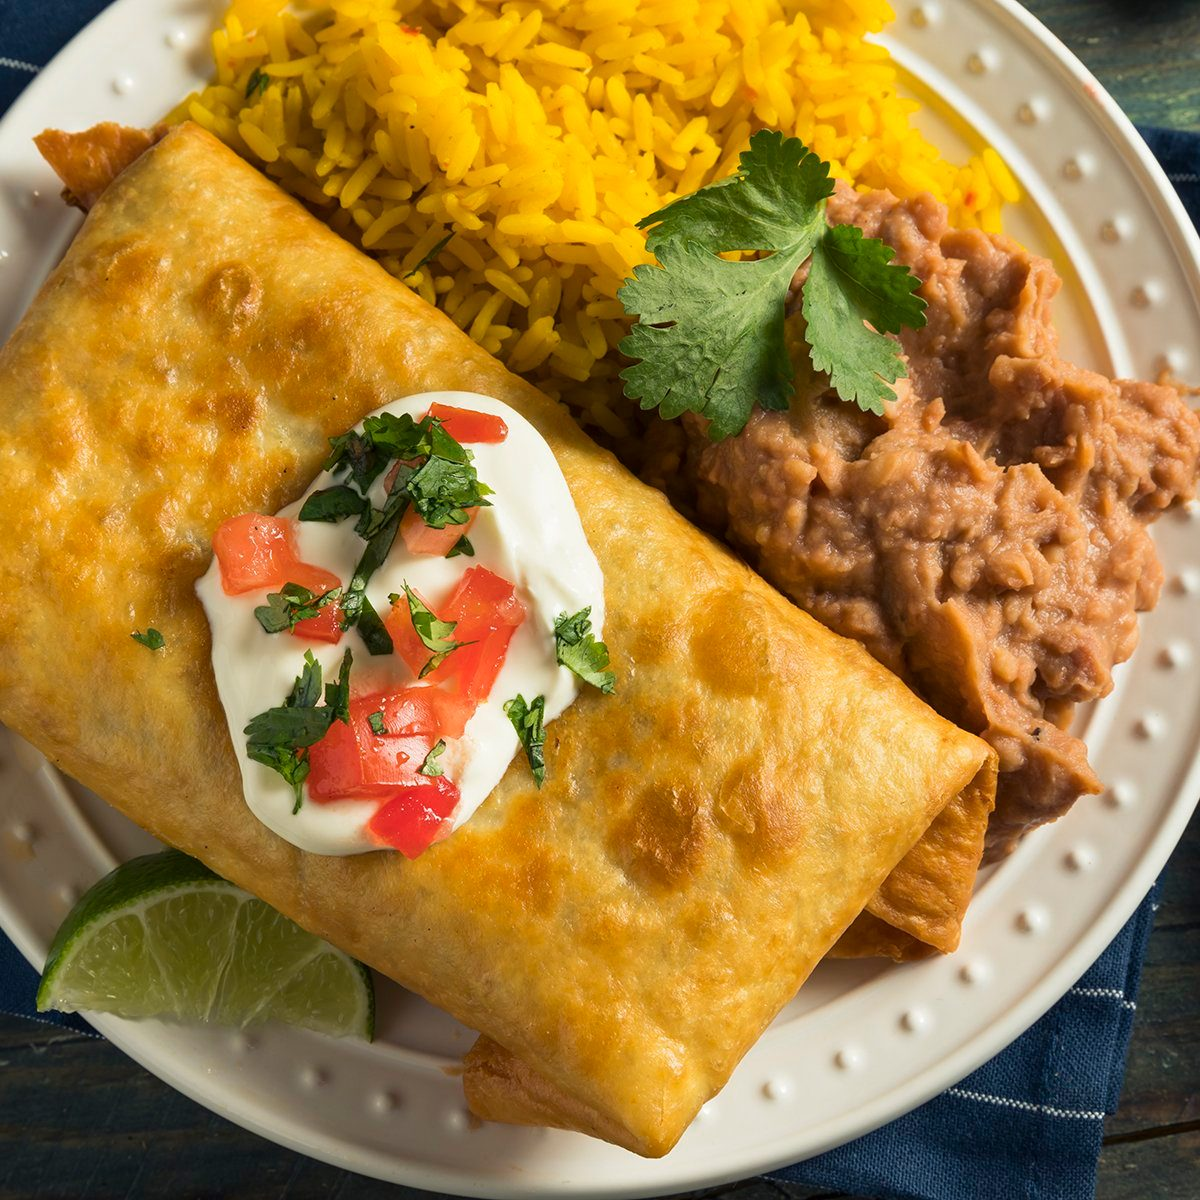 Deep Fried Beef Chimichanga Burrito with Rice and Beans